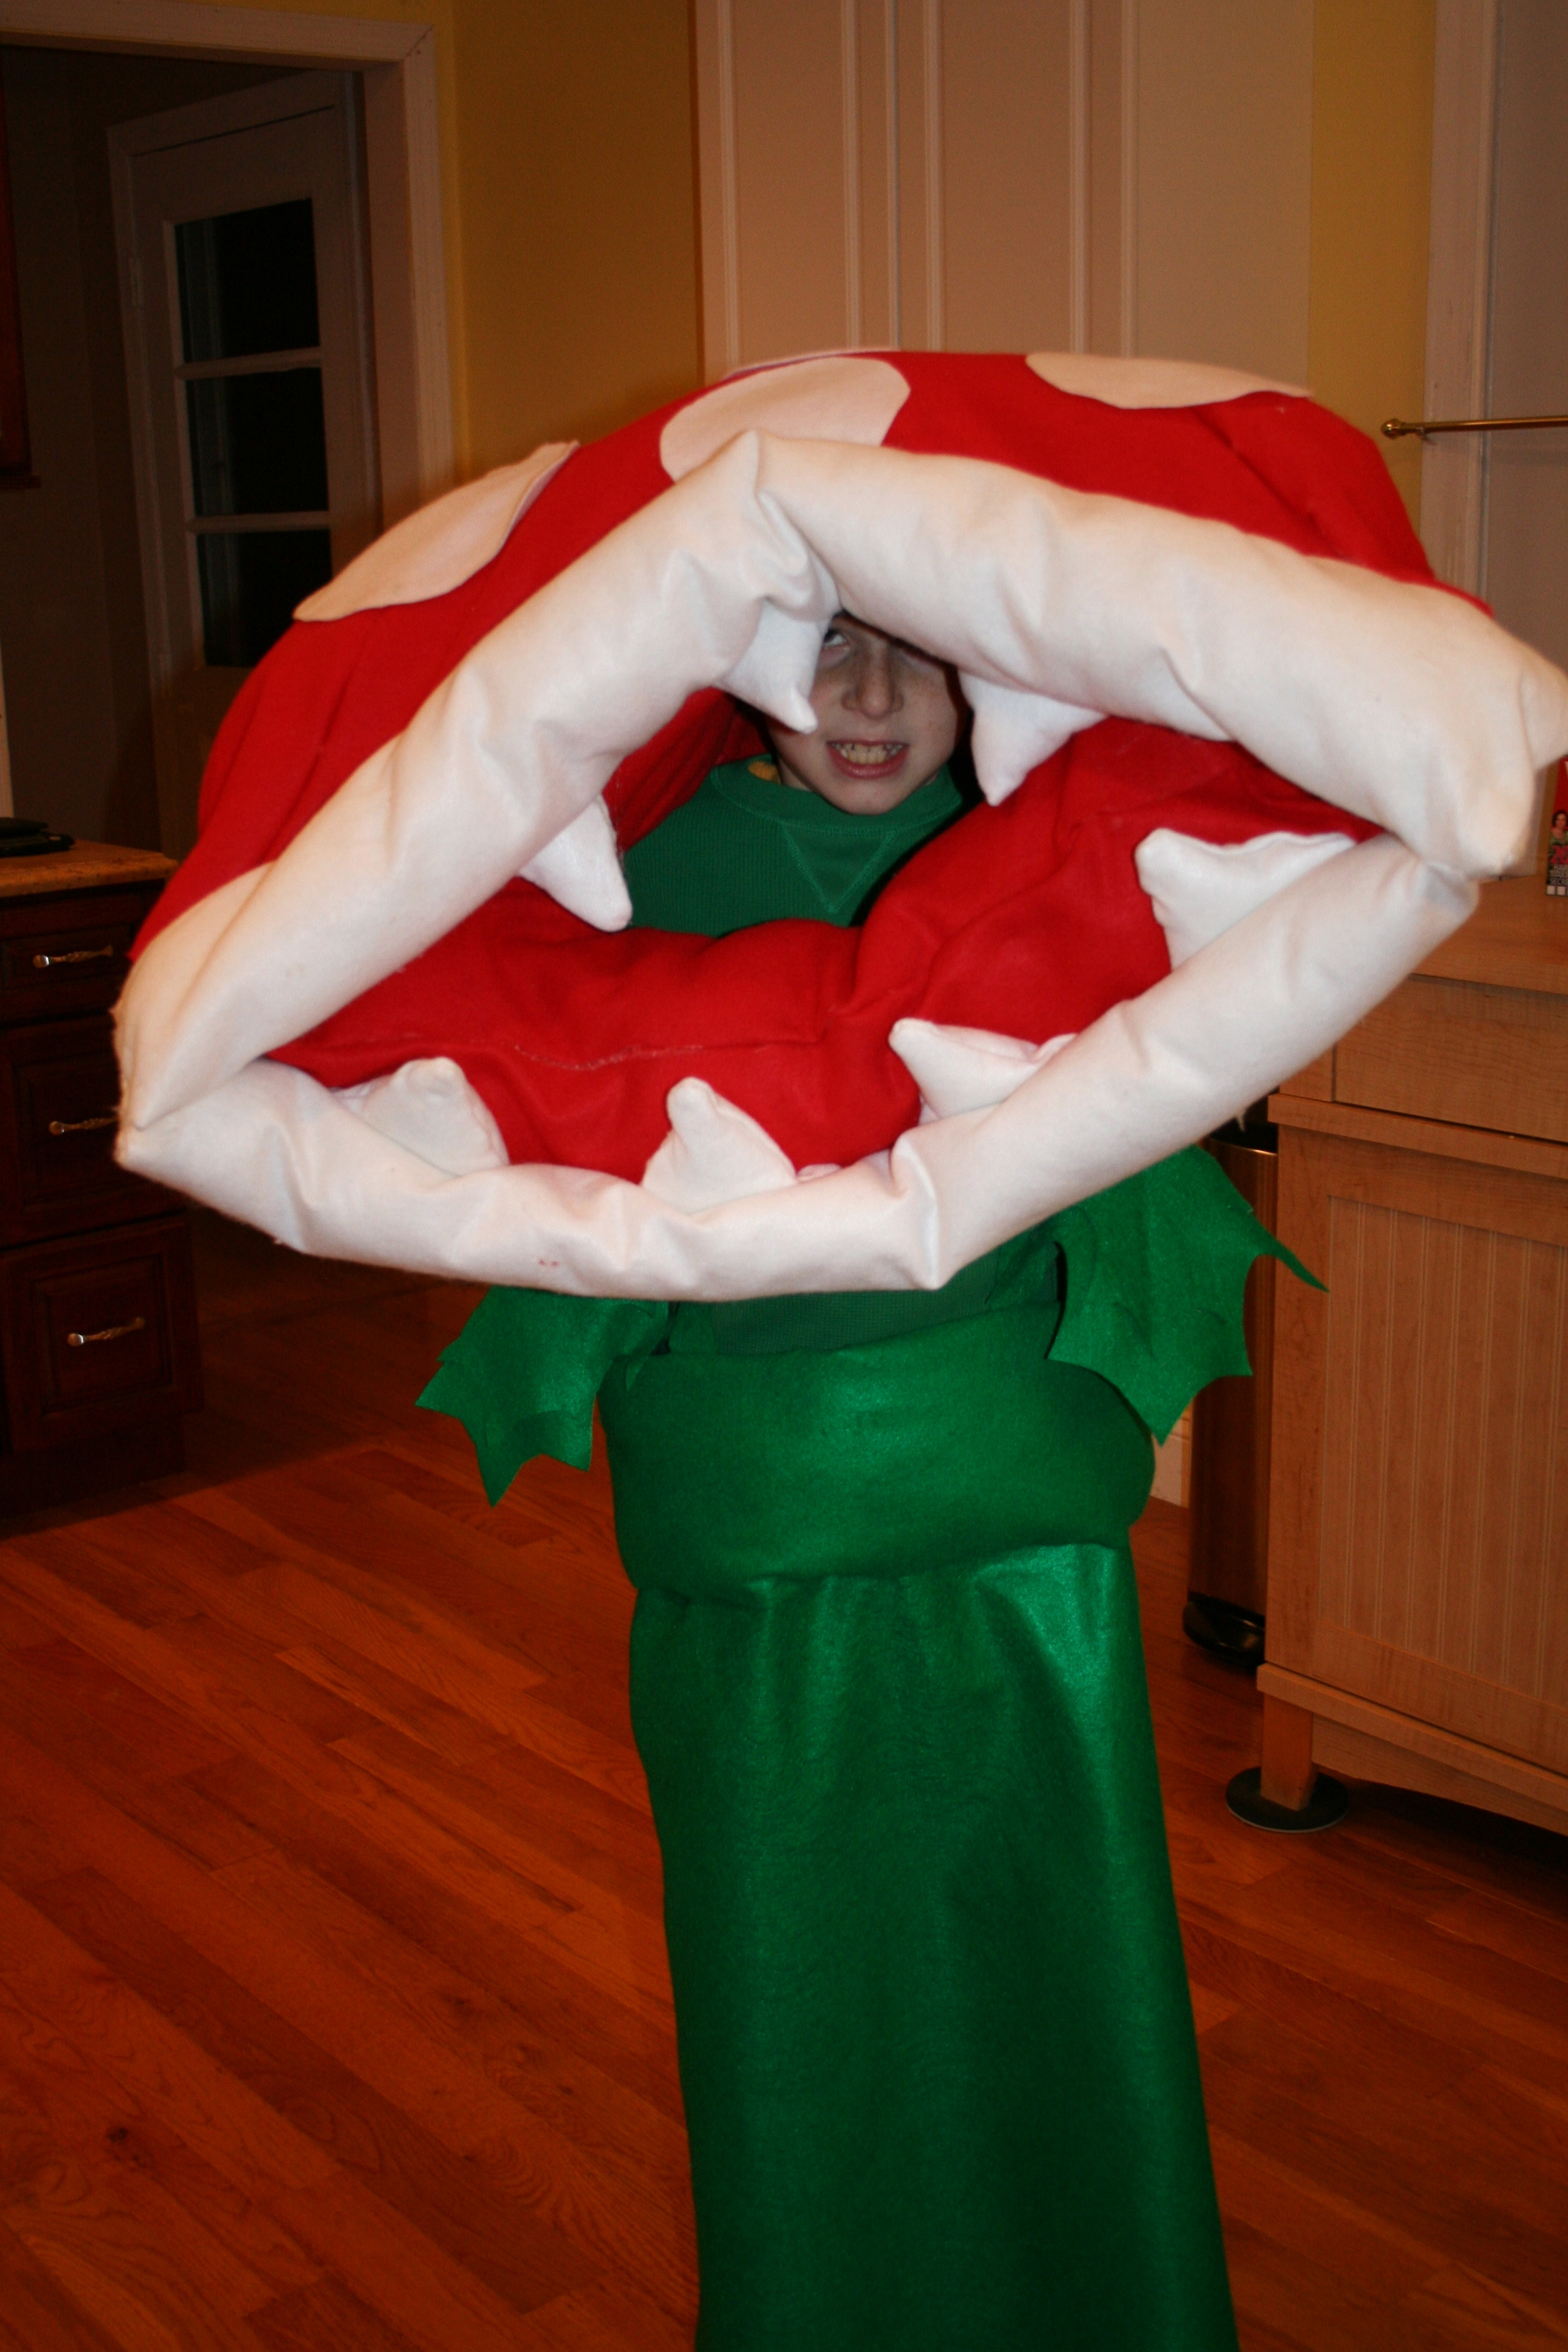 Super Mario Bros. Piranha Plant costume